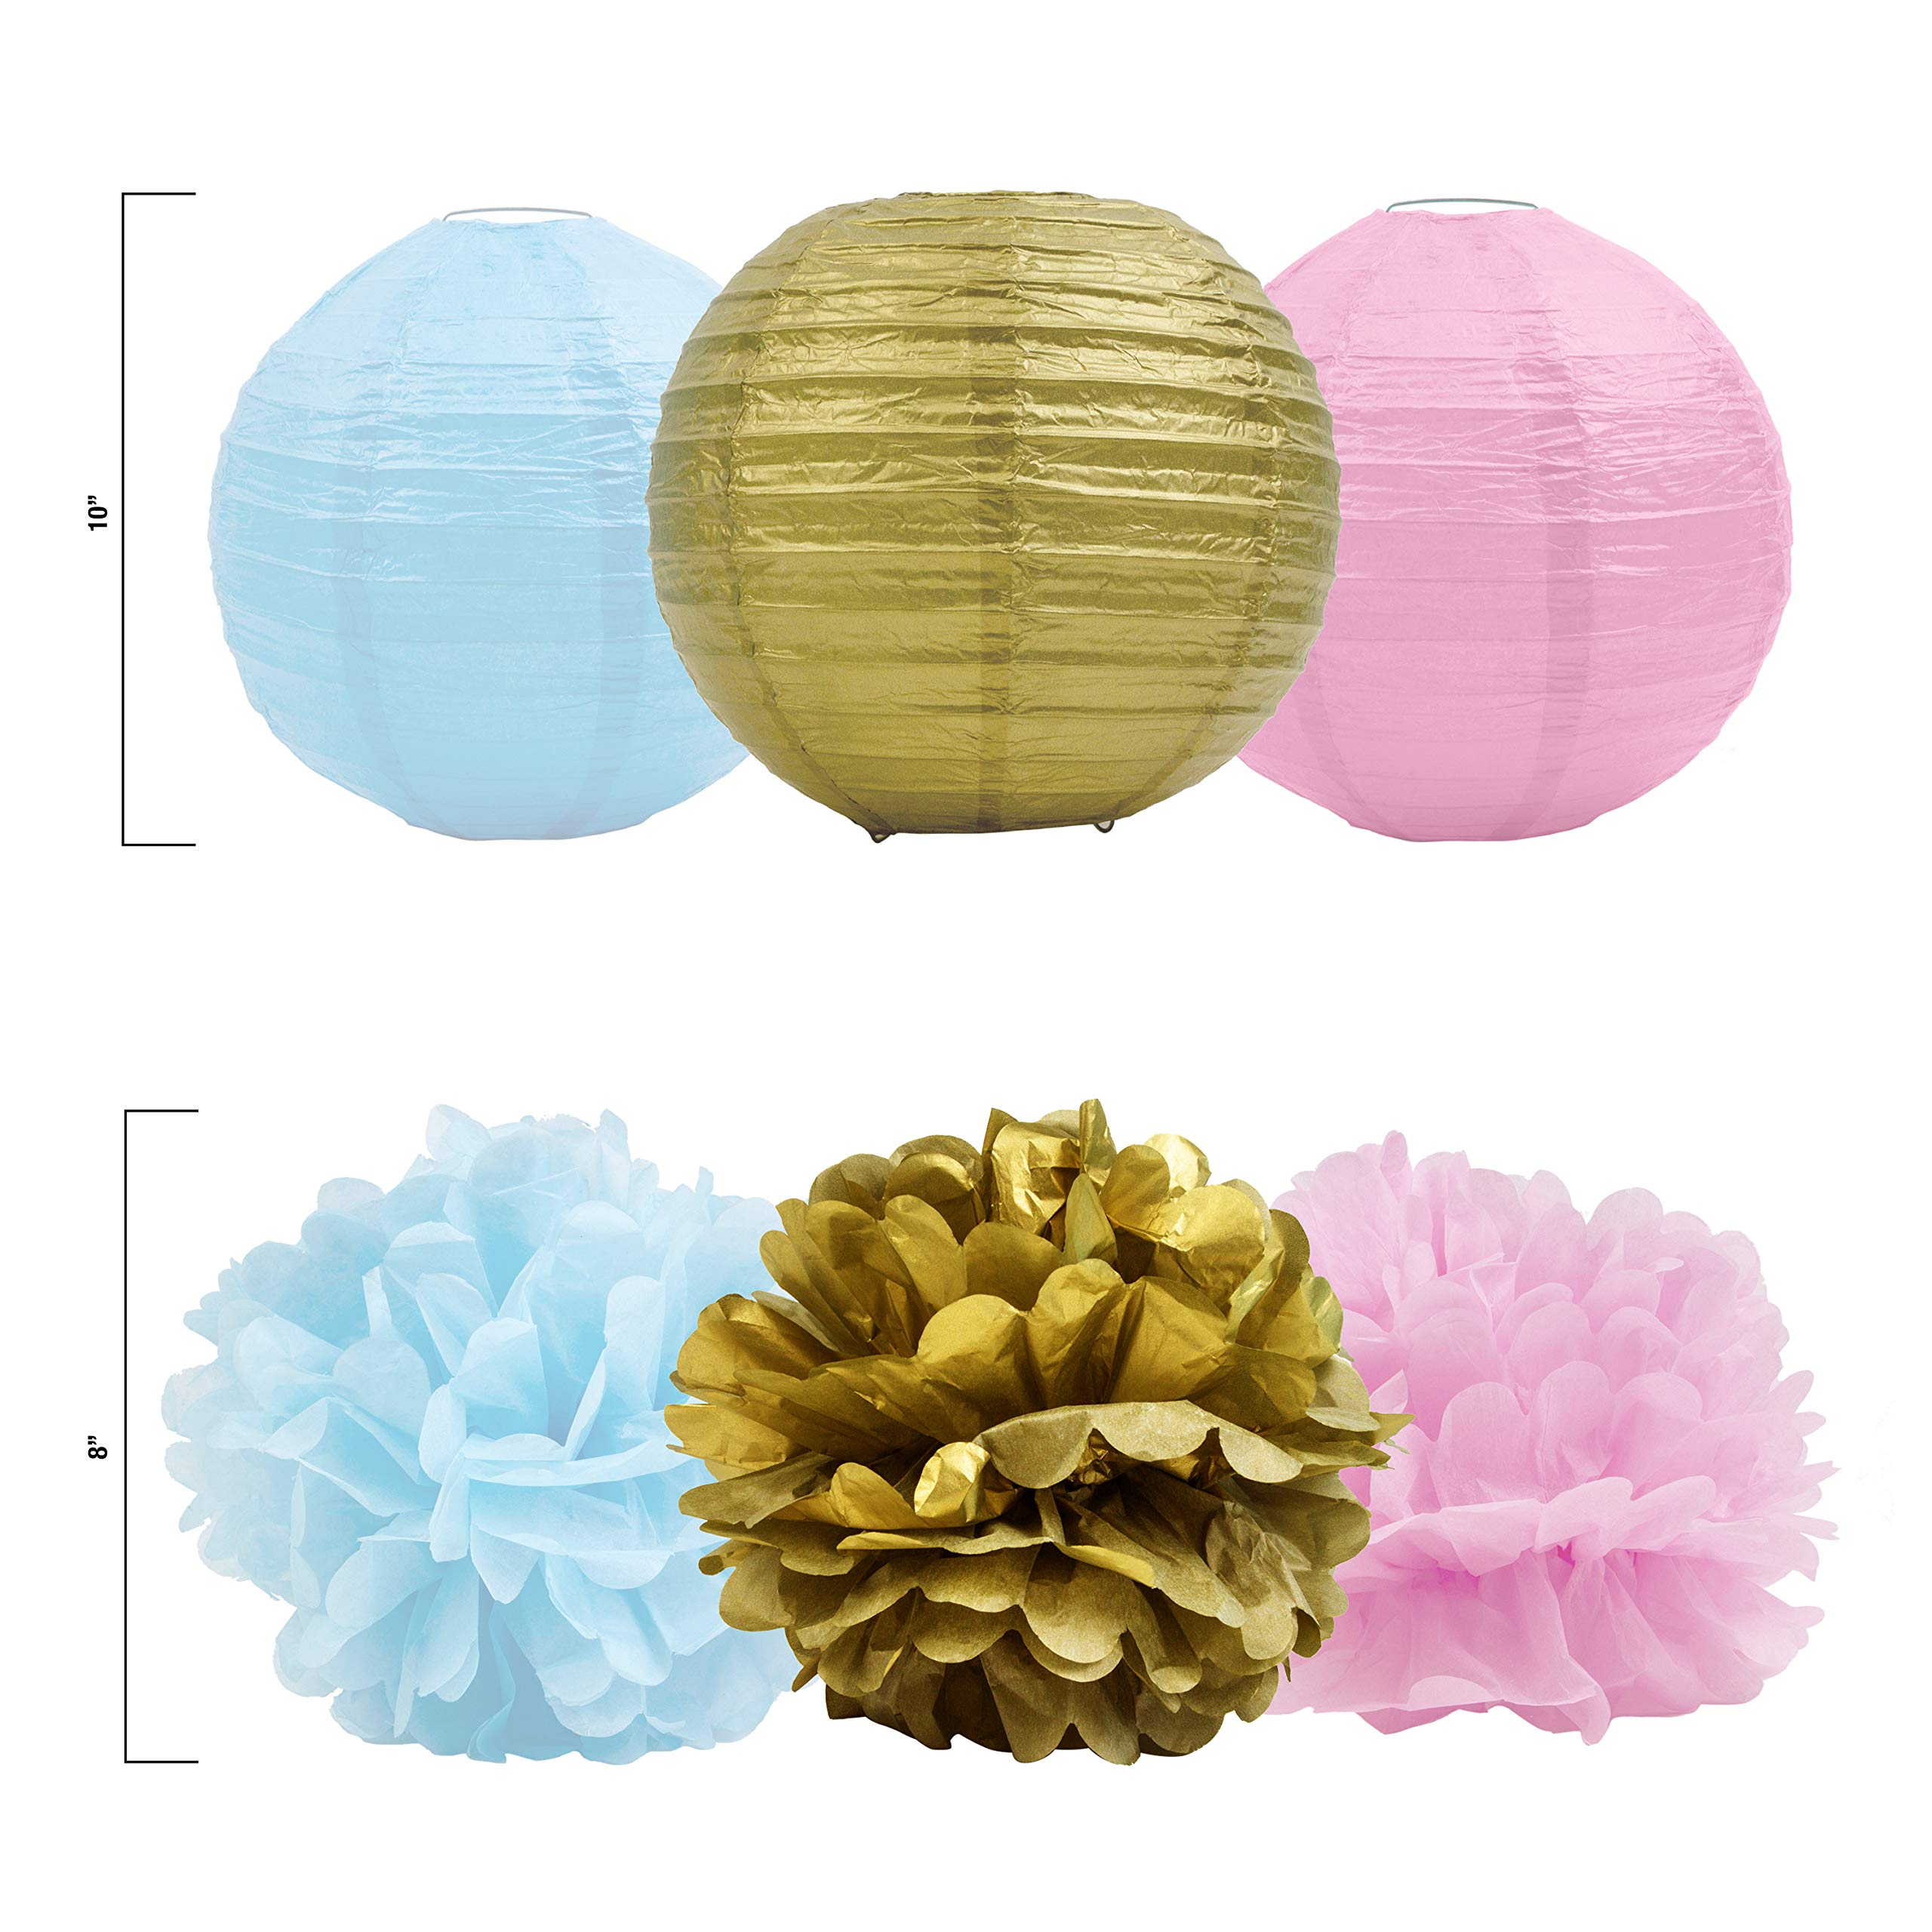 Gender Reveal Party Supplies (75 Pieces) with Photo Props, 36 Inch Reveal Balloon and Sash - Premium Baby Shower Decorations Set - Confetti Balloons, Boy or Girl Banner, Paper Lanterns and Pom Poms by FutureSquared (Image #4)